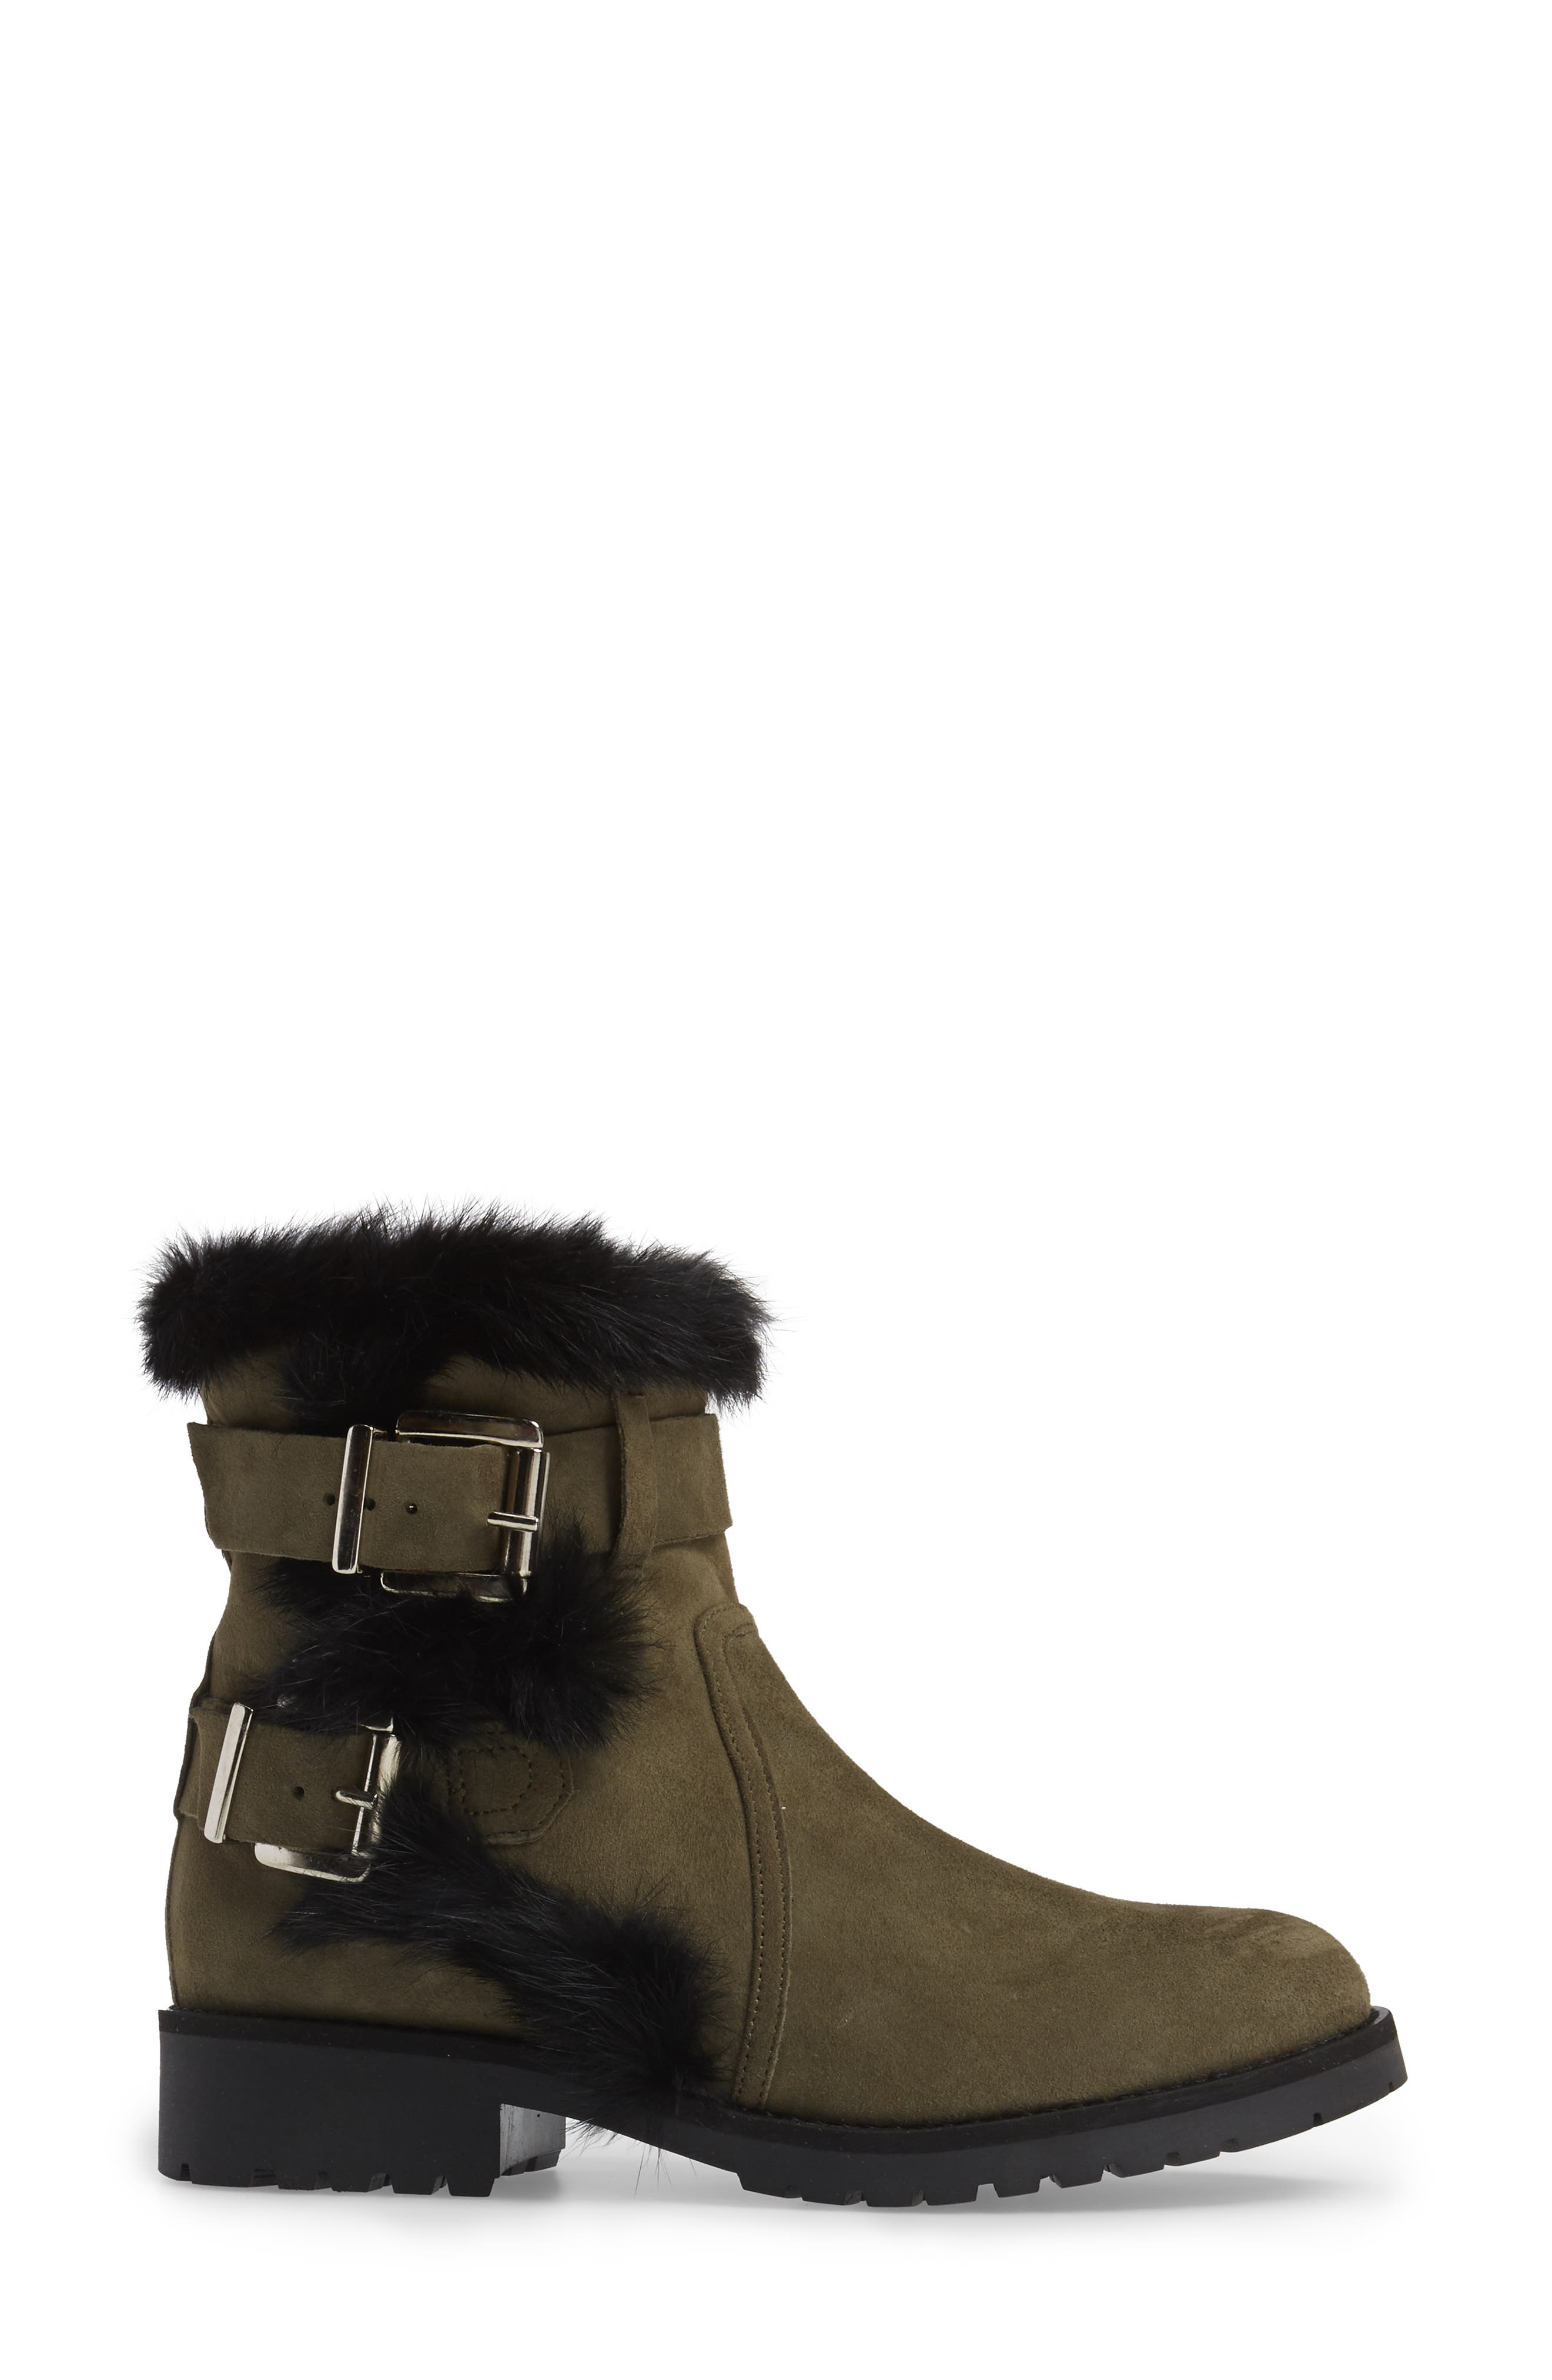 Alternate Image 3  - Charles David Rustic Genuine Rabbit Fur Cuff Boot (Women)